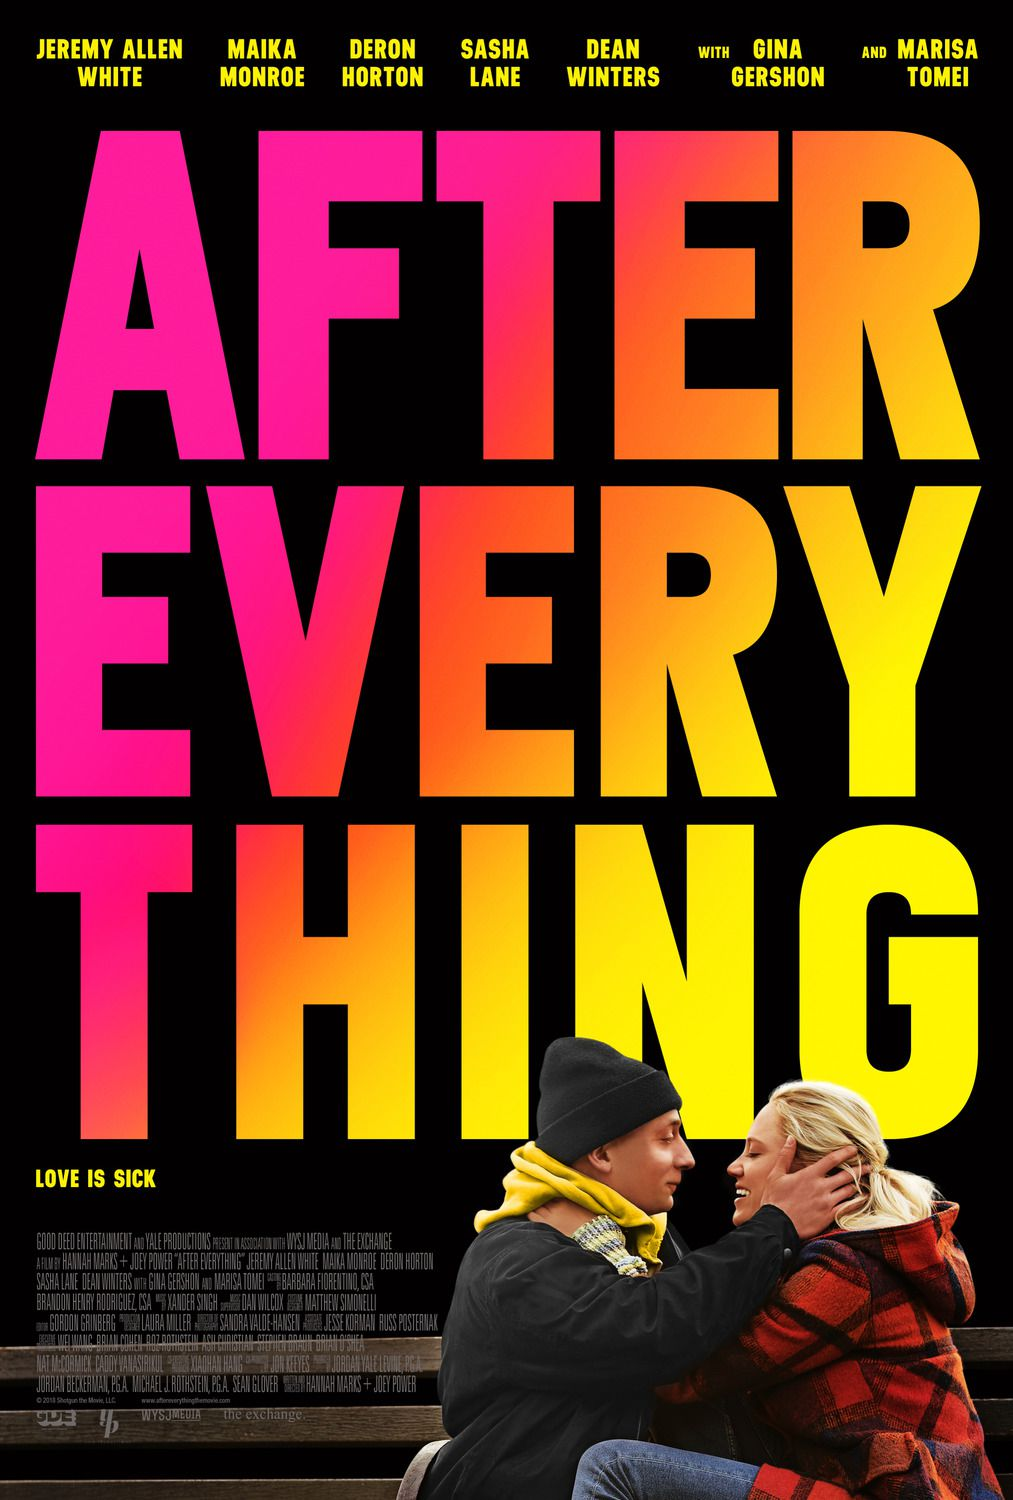 After Everything (2018) - Love is Sick - Cast: Maika Monroe, Jeremy Allen White, DeRon Horton, Marisa Tomei, Sasha Lane, Dean Winters, Gina Gershon - film poster